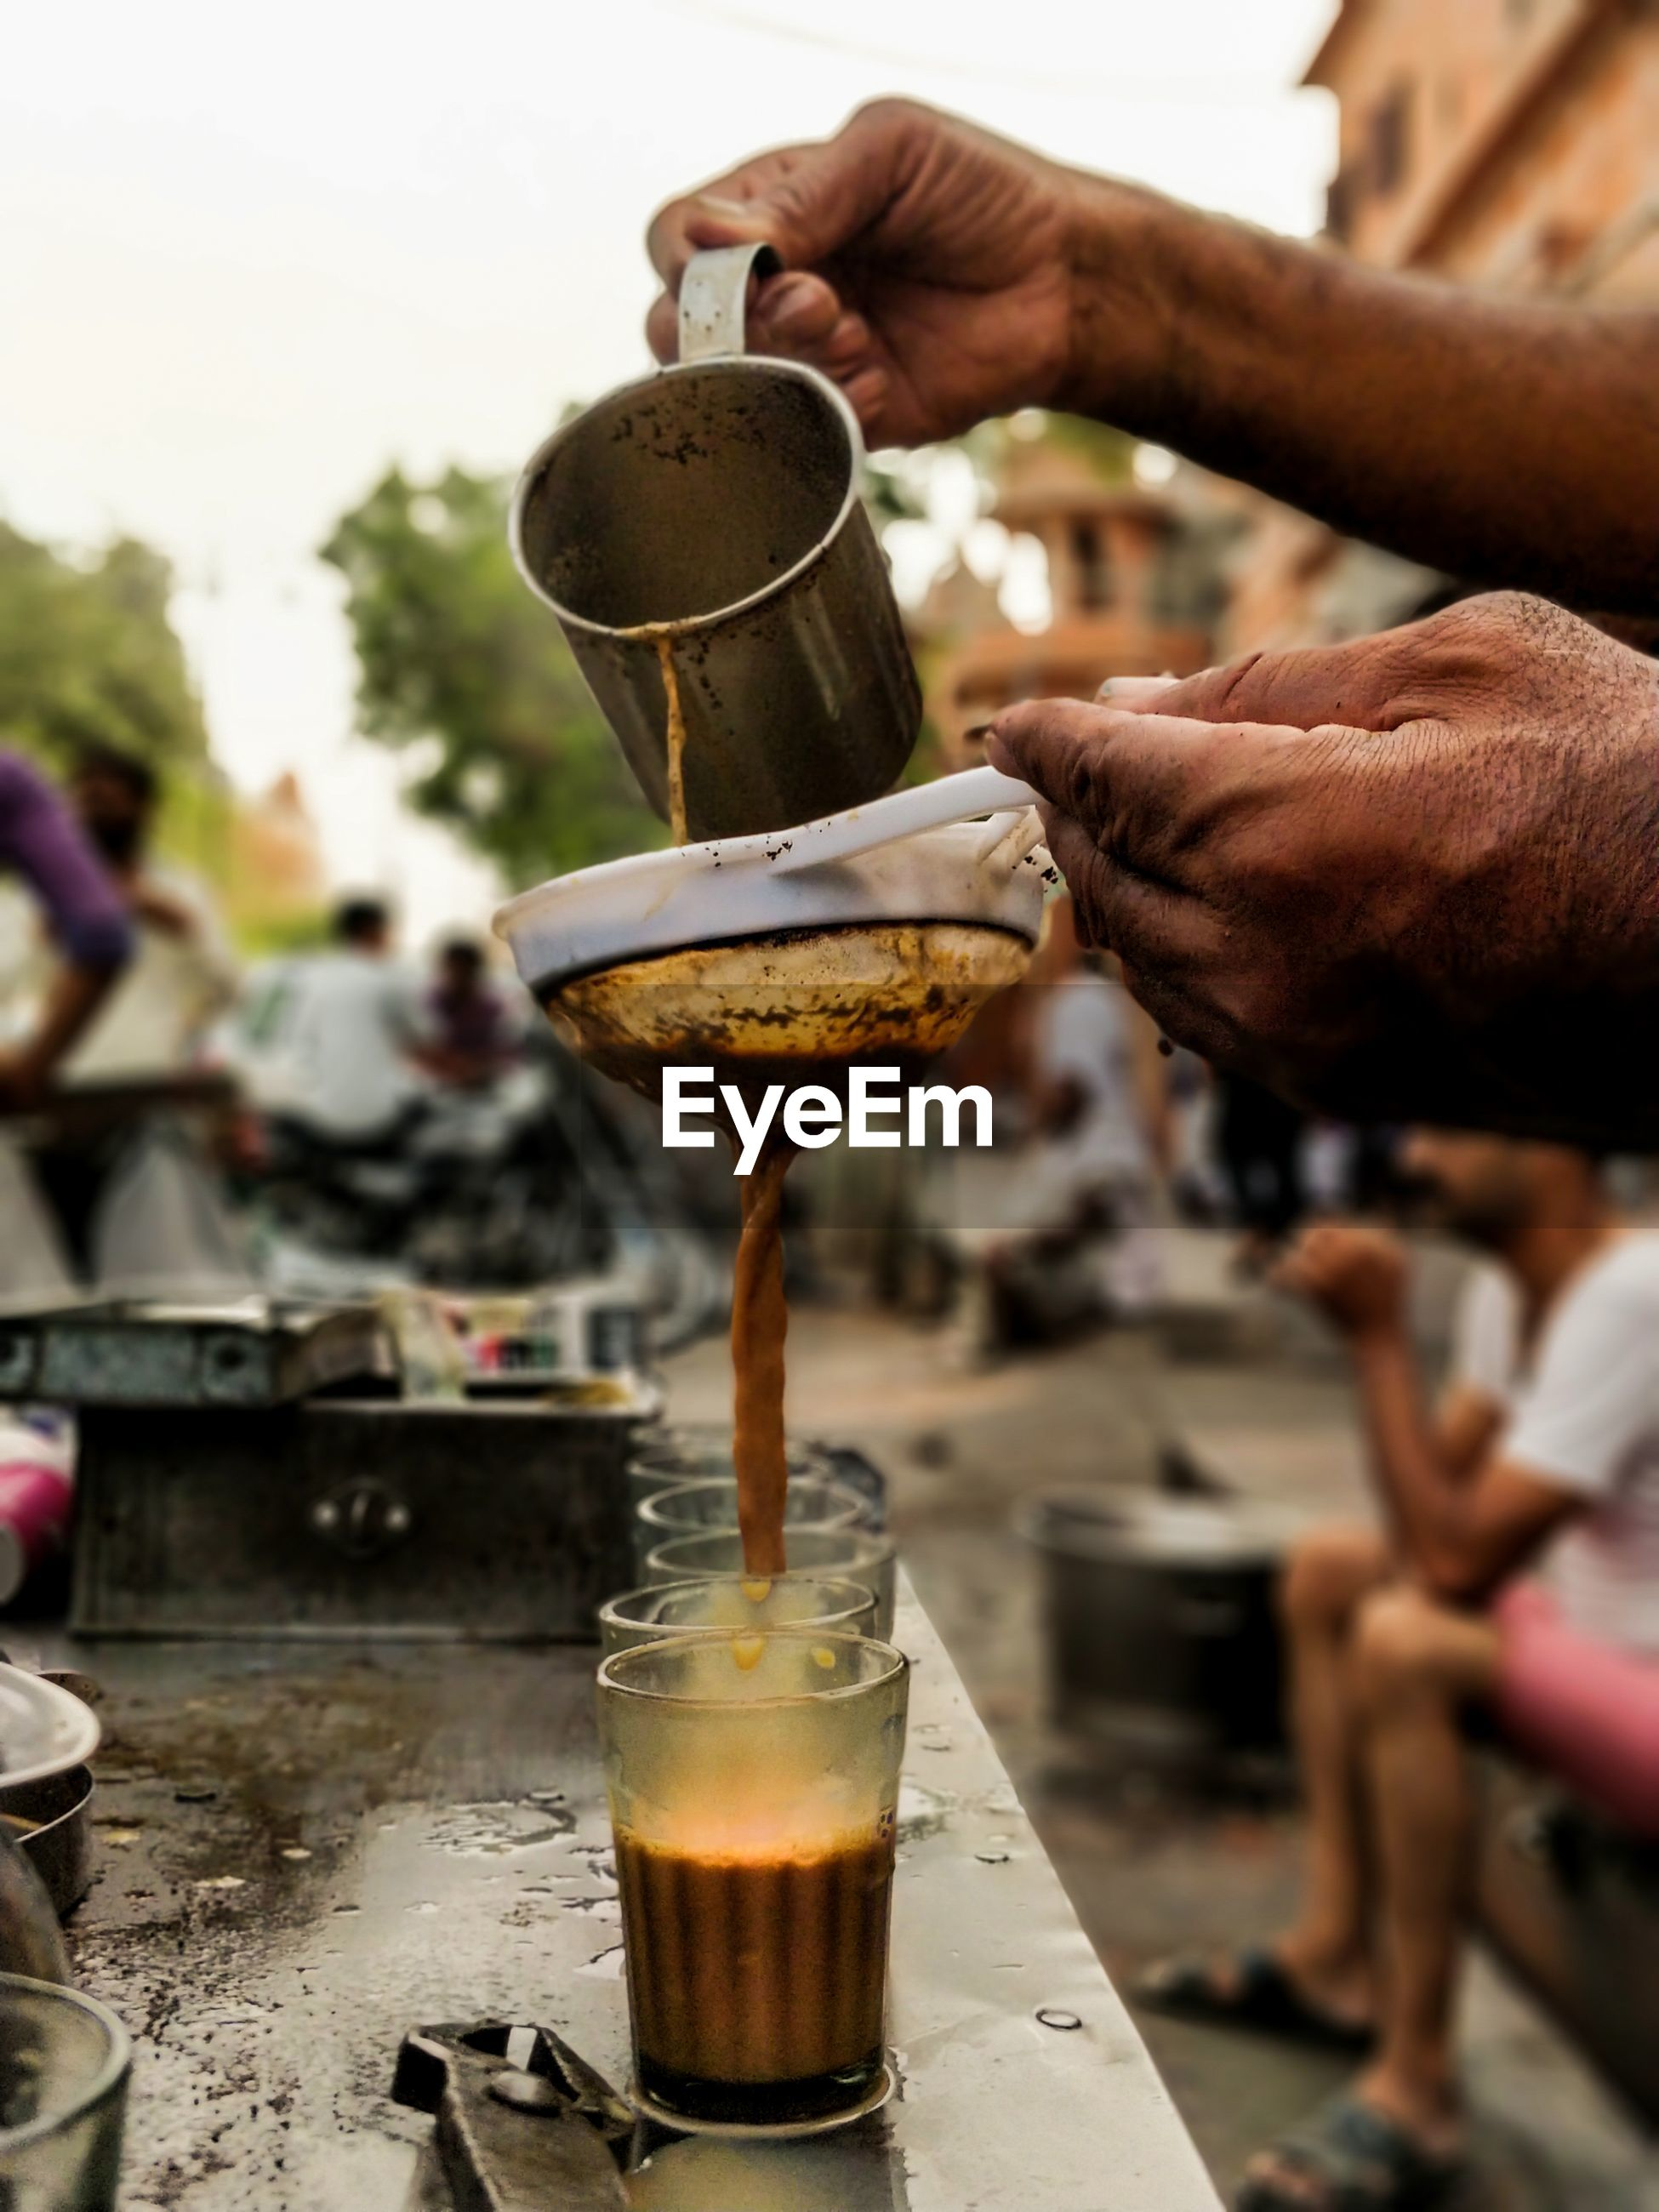 Cropped hands of male vendor preparing tea at market stall